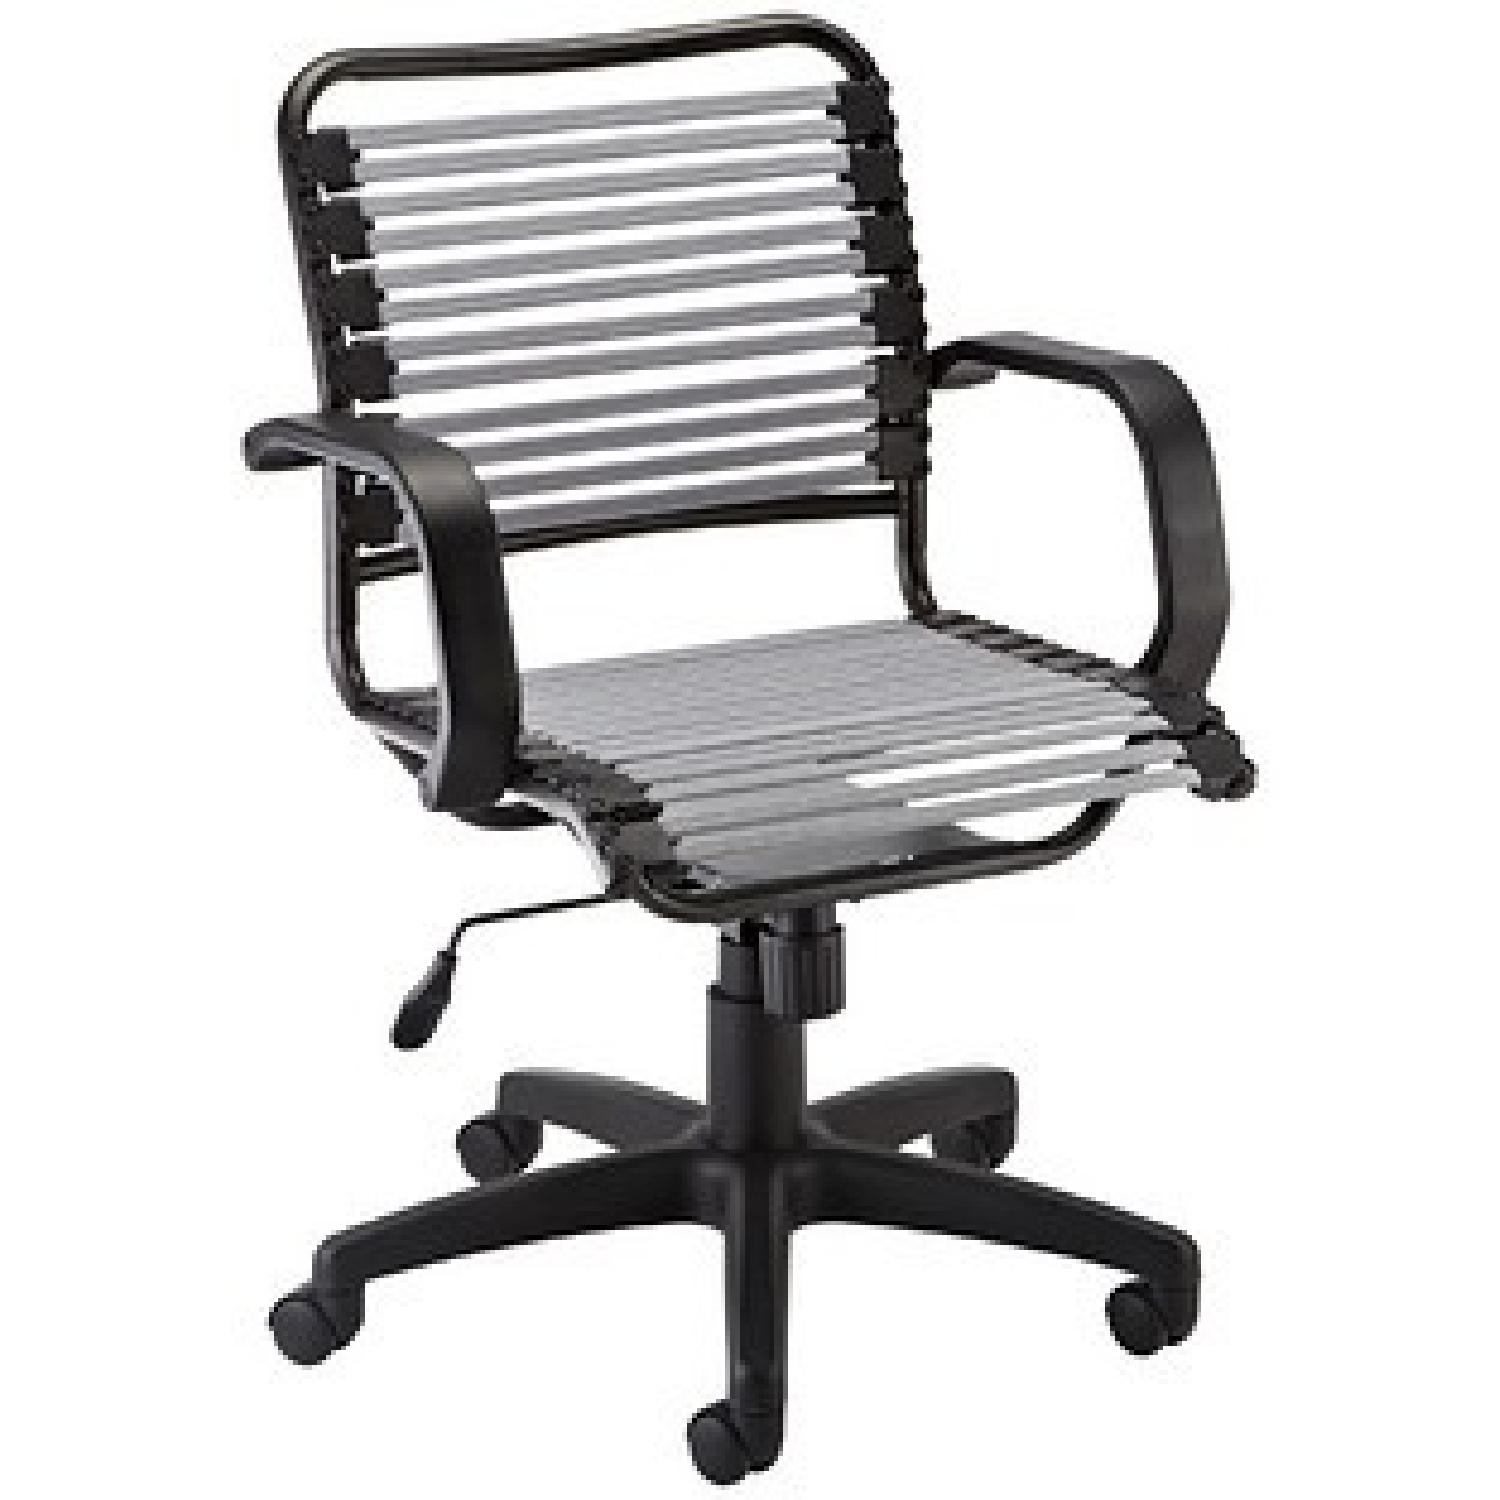 Container Store White Flat Bungee Office Chair w/ Arms